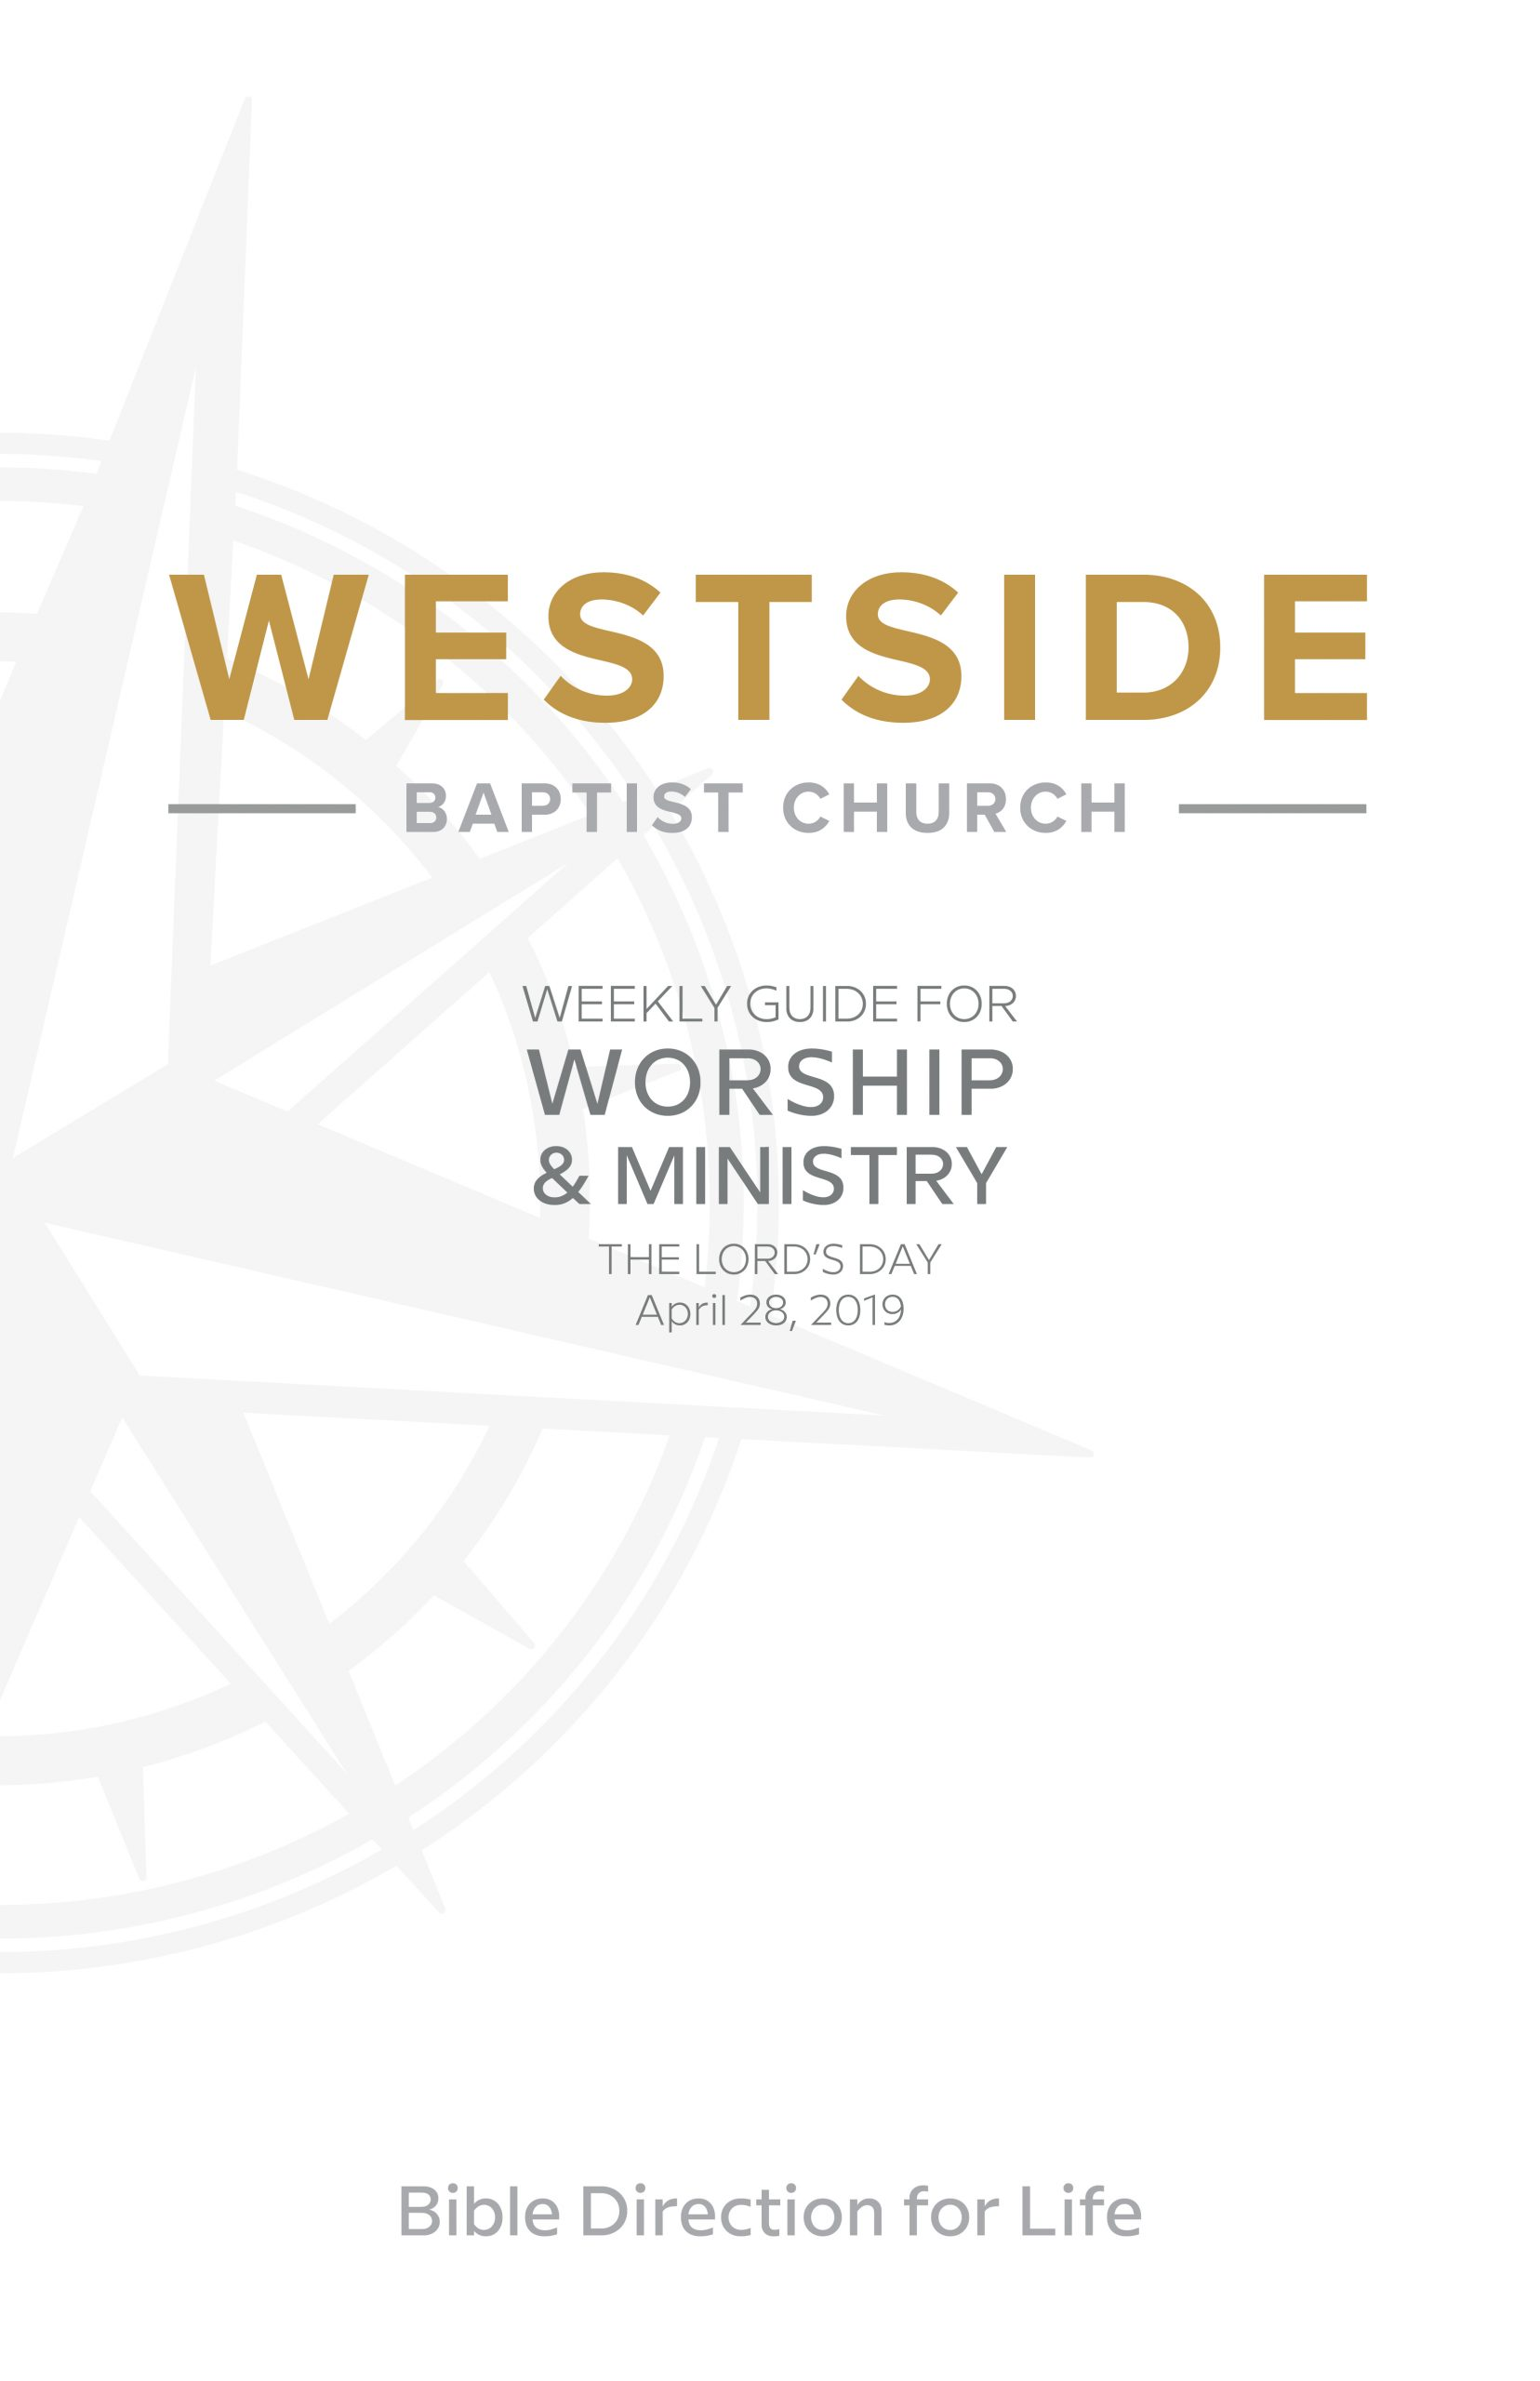 Weekly Guide for Worship and Ministry—April 28